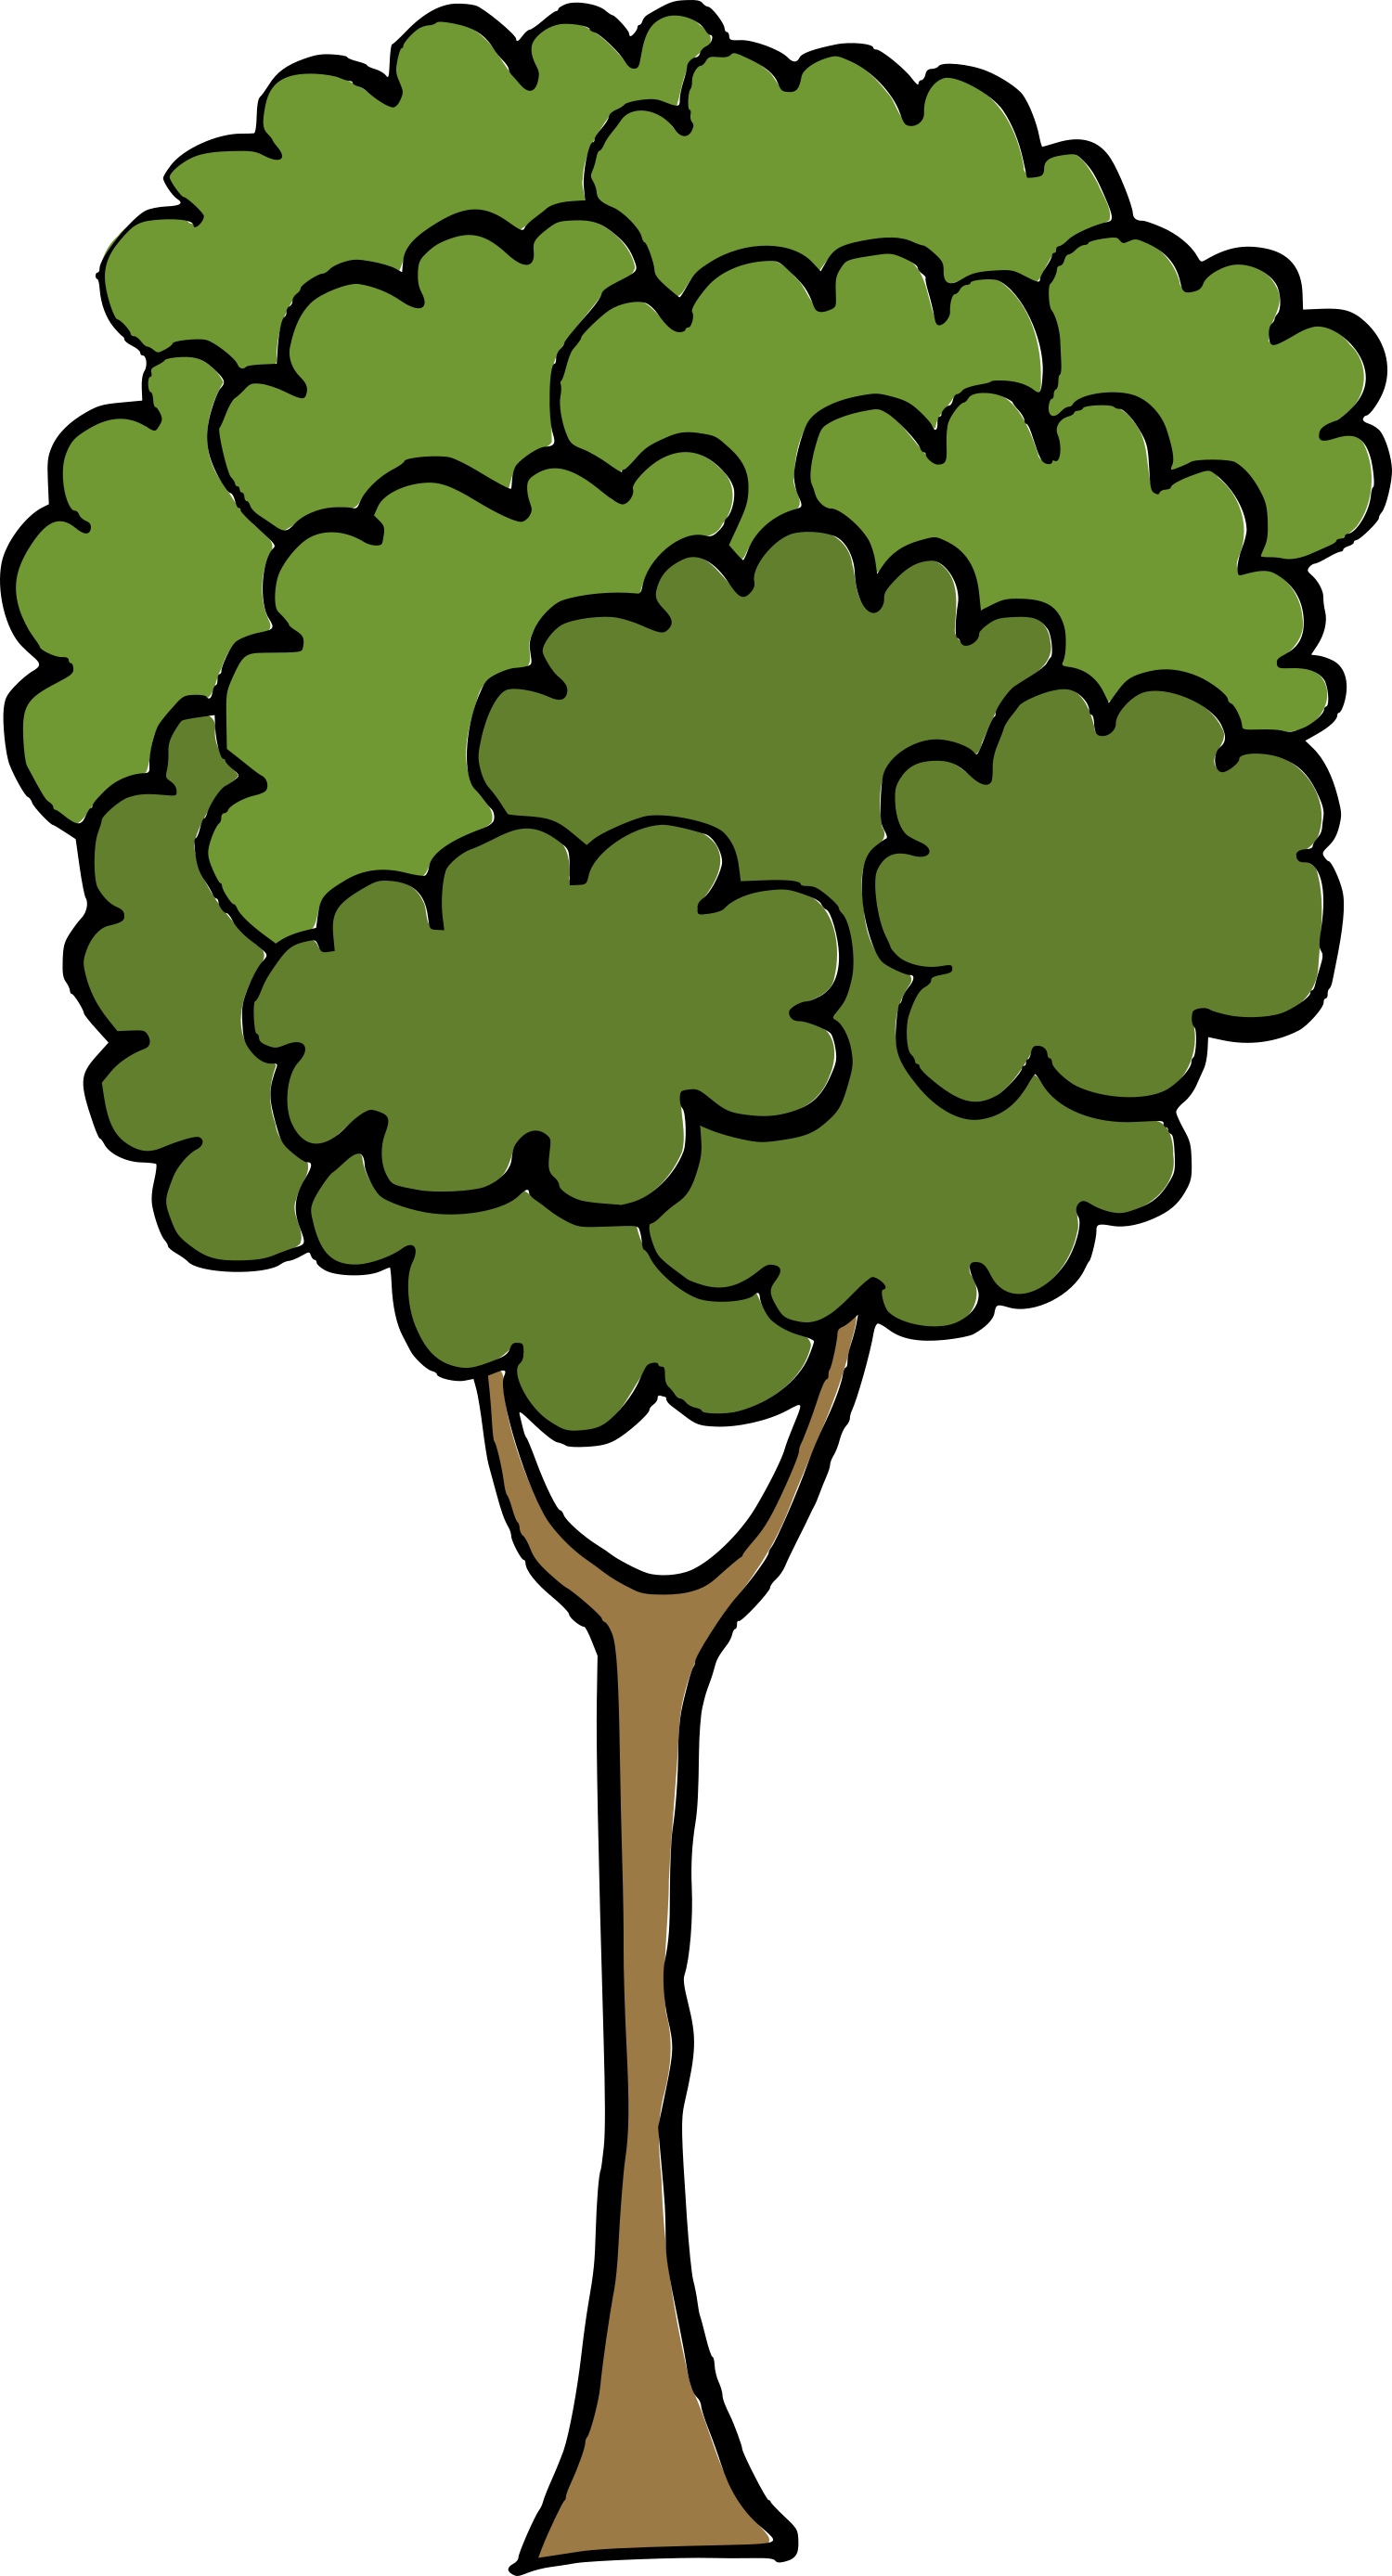 cartoon-tree-2.png